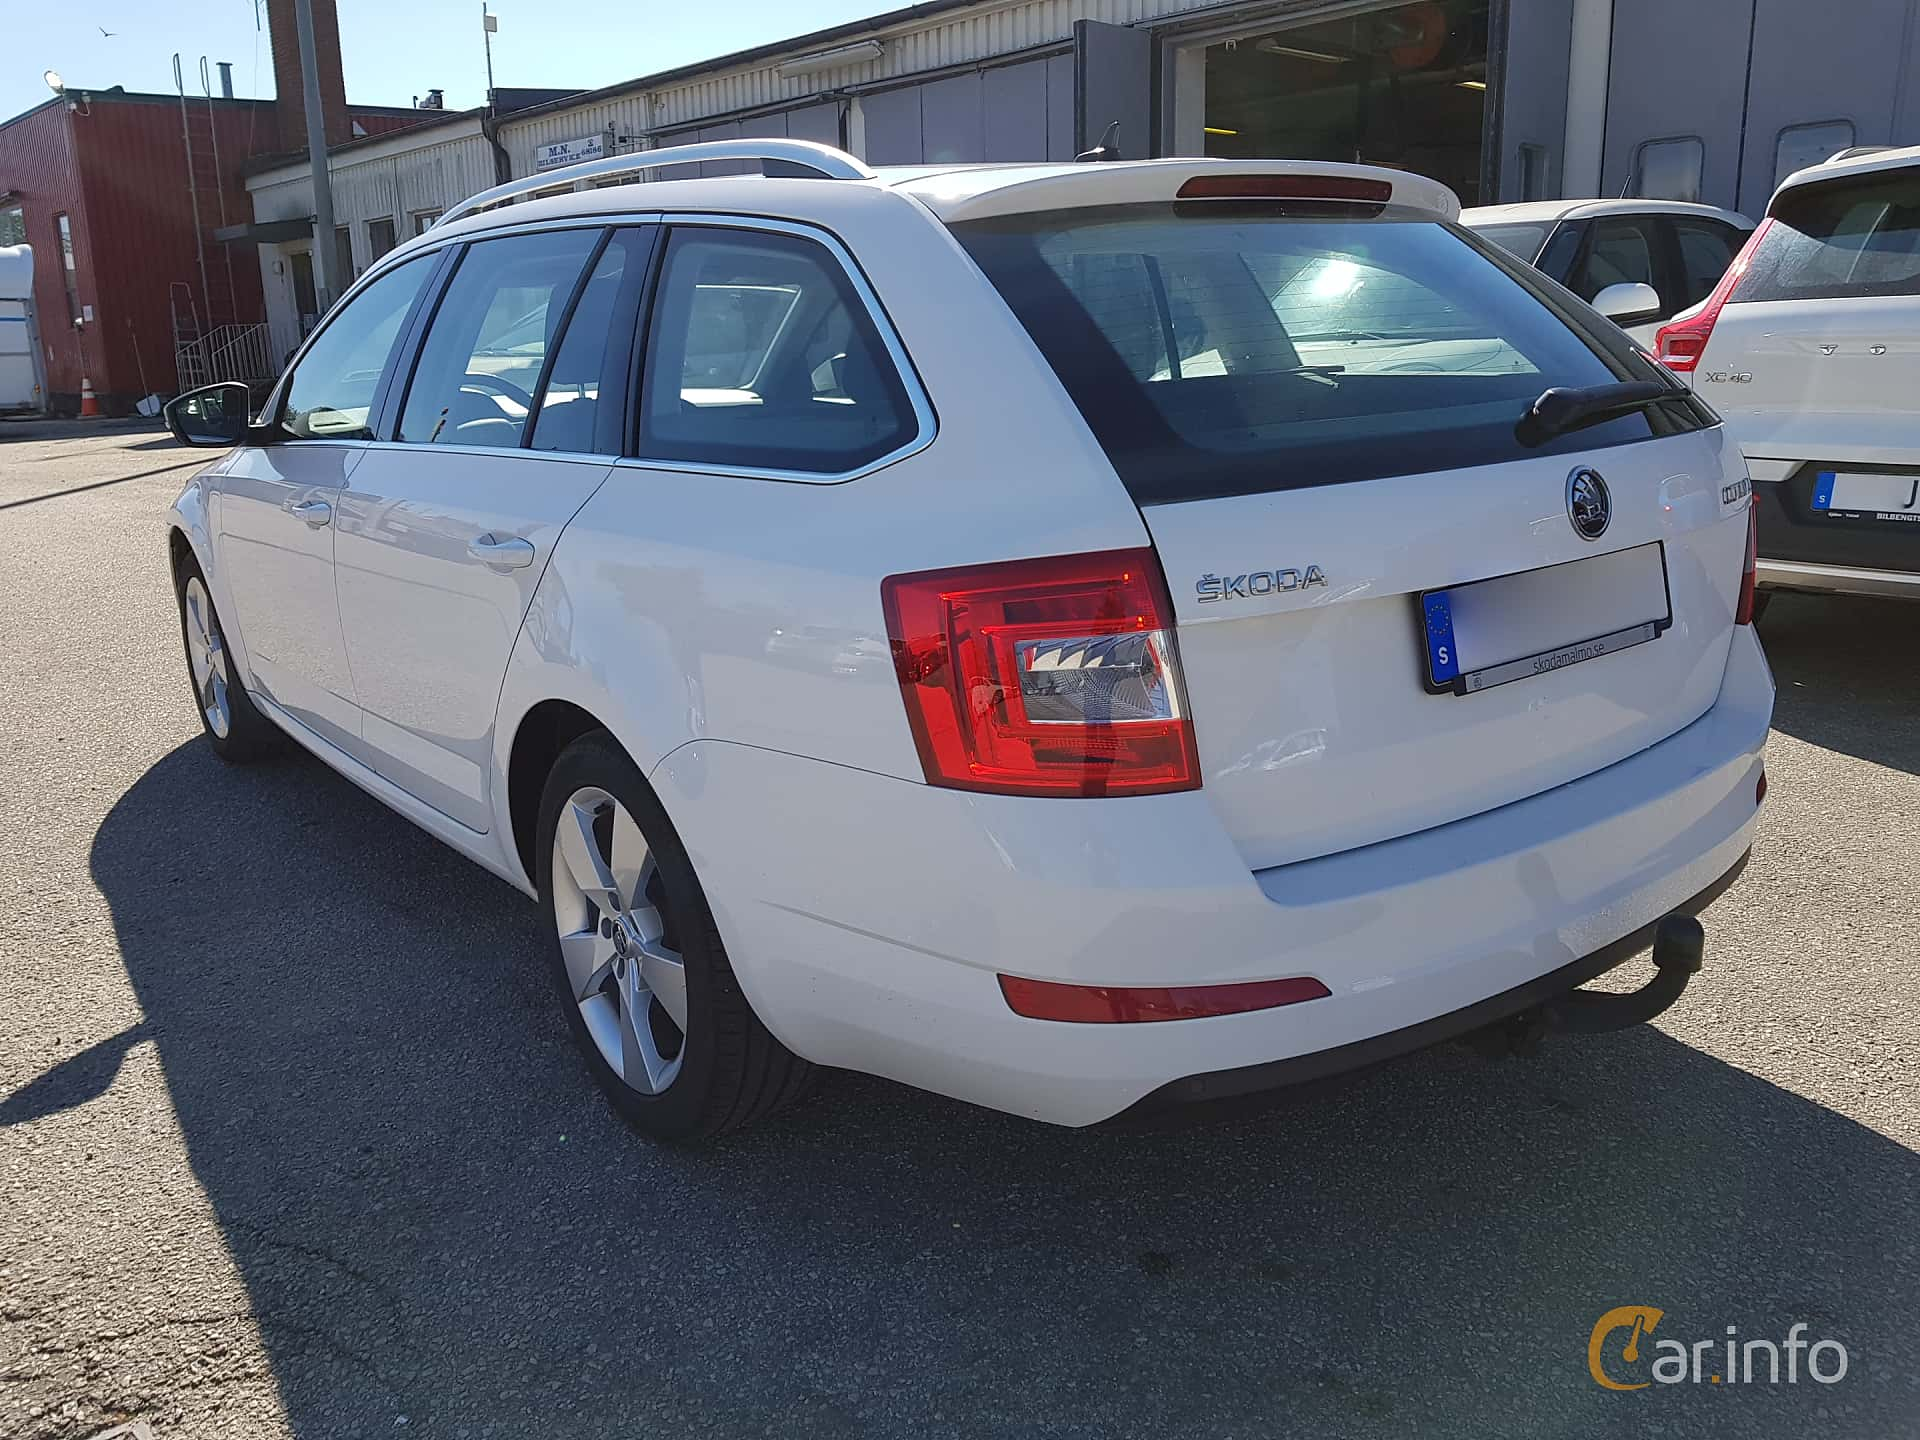 Skoda Octavia Combi 1.6 TDI Manual, 110hp, 2016